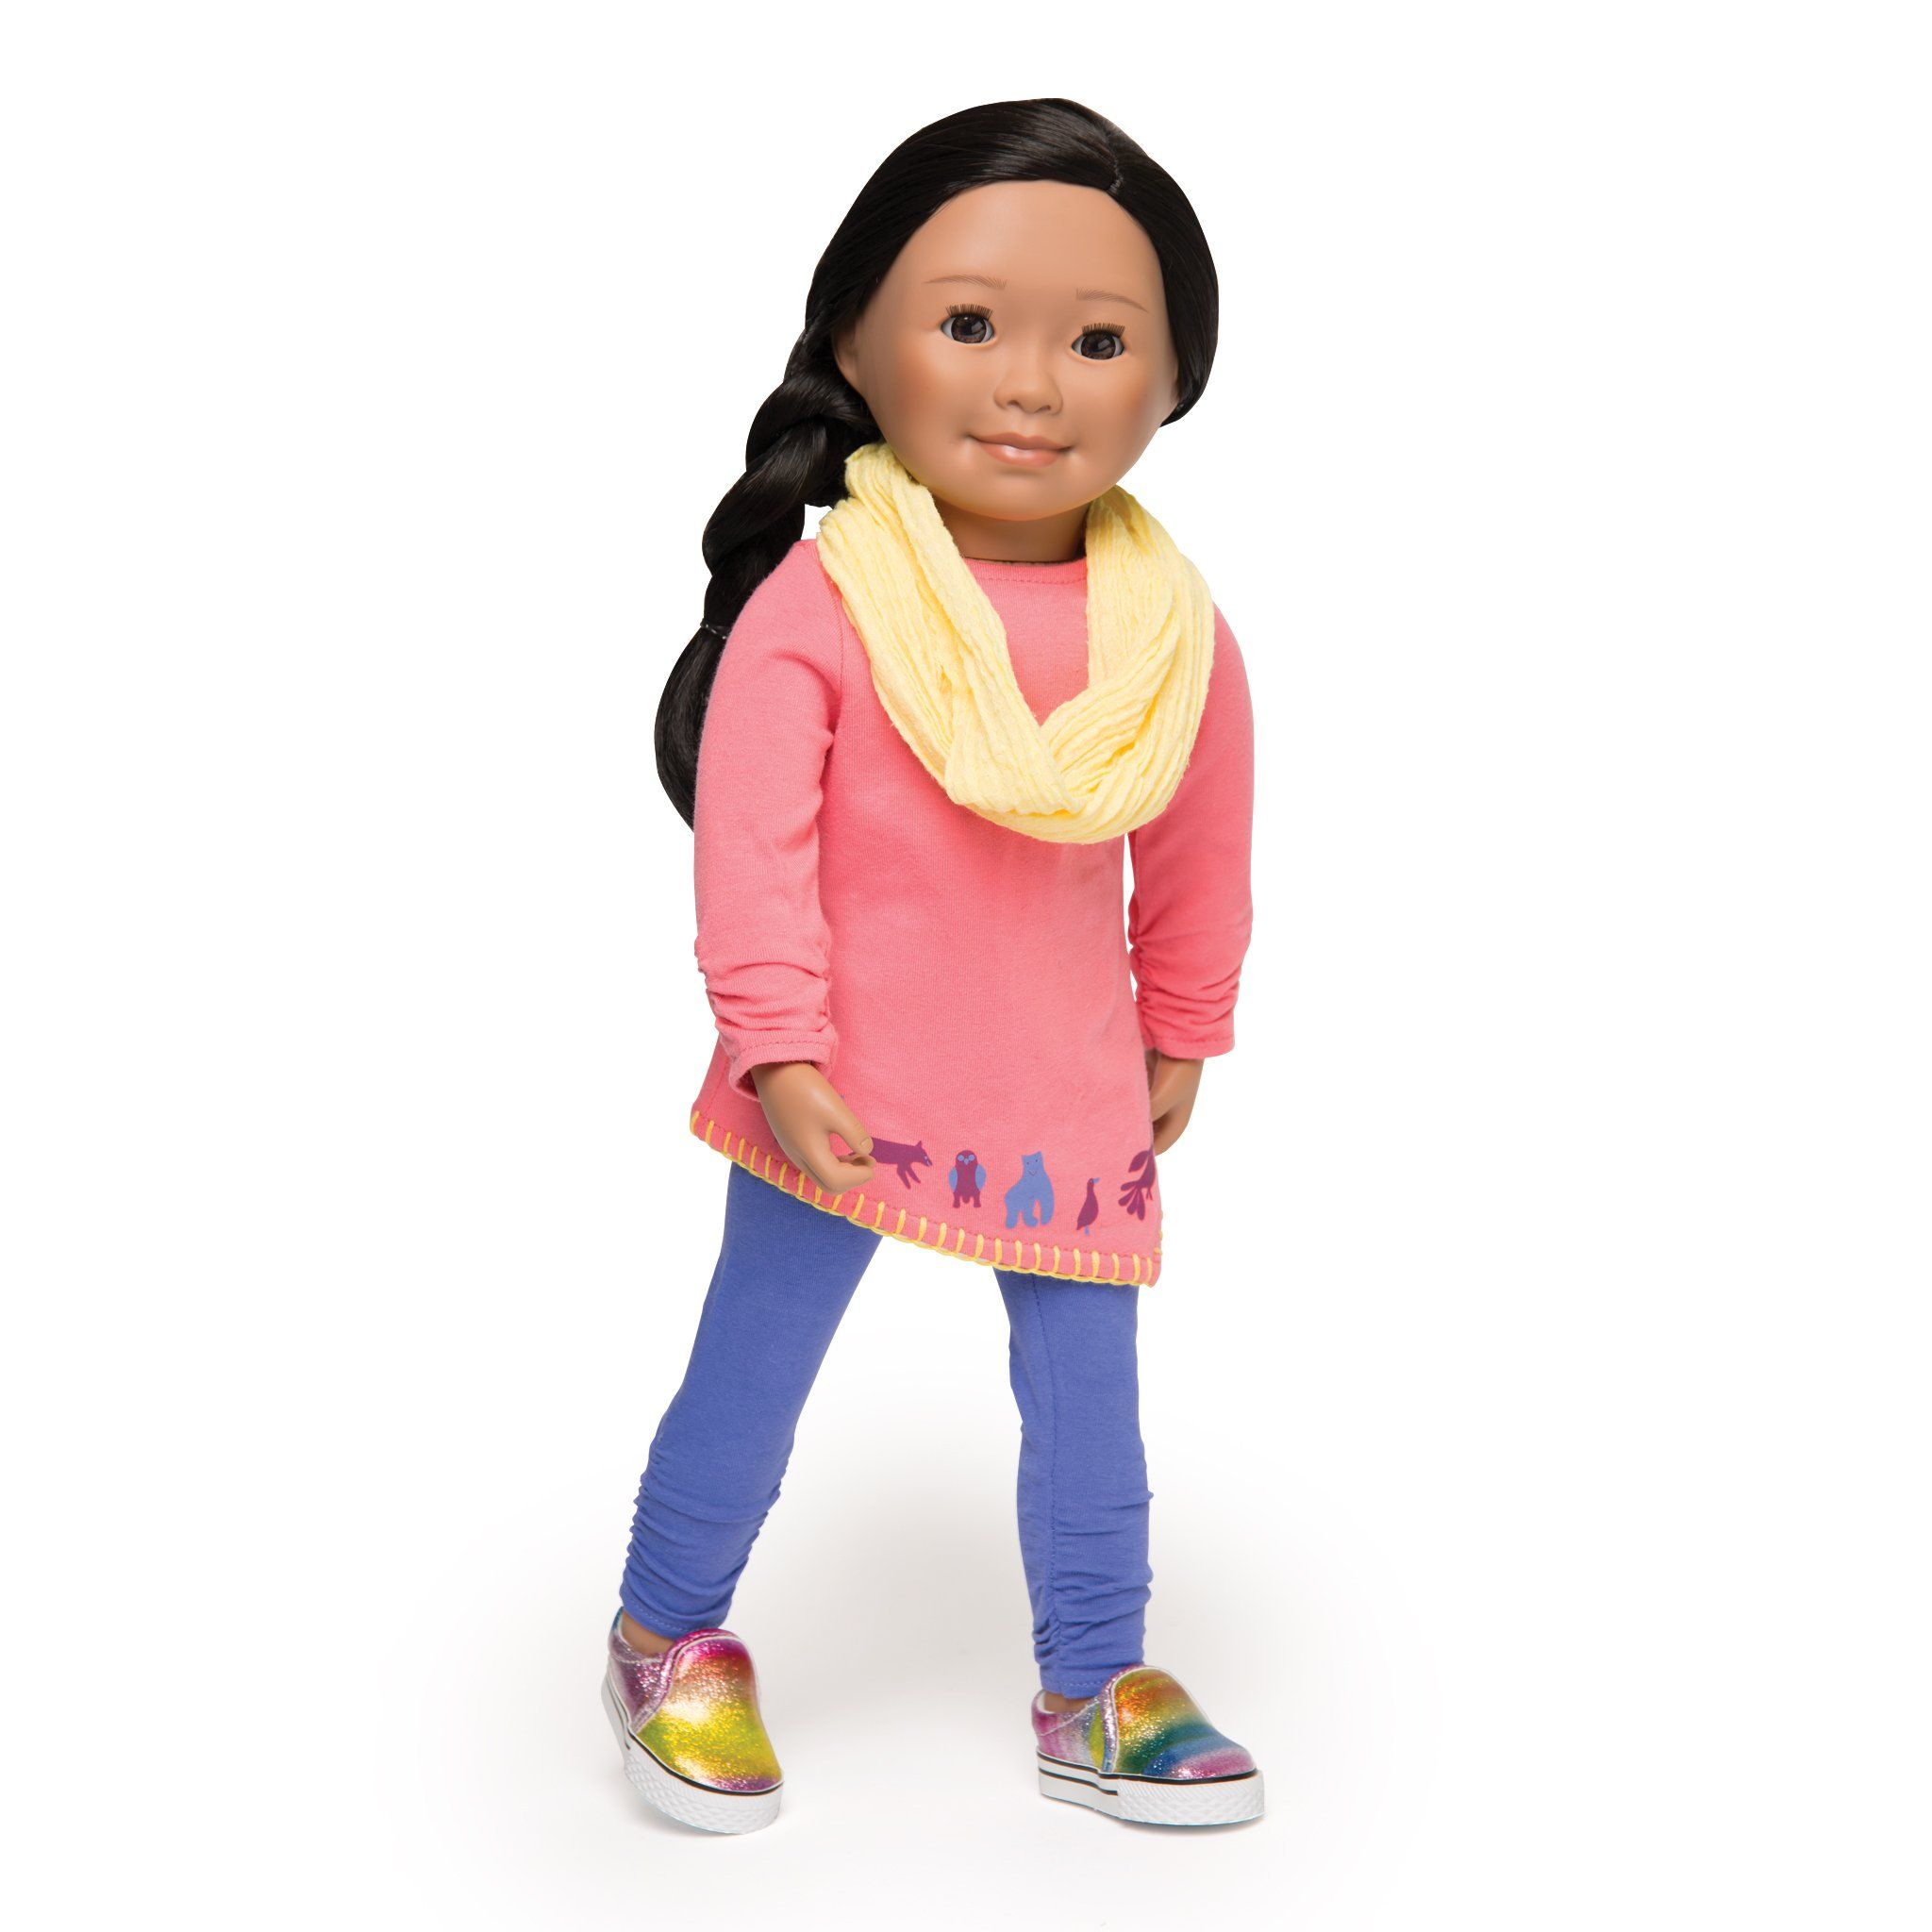 Artfully Inspired casual outfit pink tunic long sleeve shirt with Inuit art hem, purple tights and yellow infinity scarf fits all 18 inch dolls.